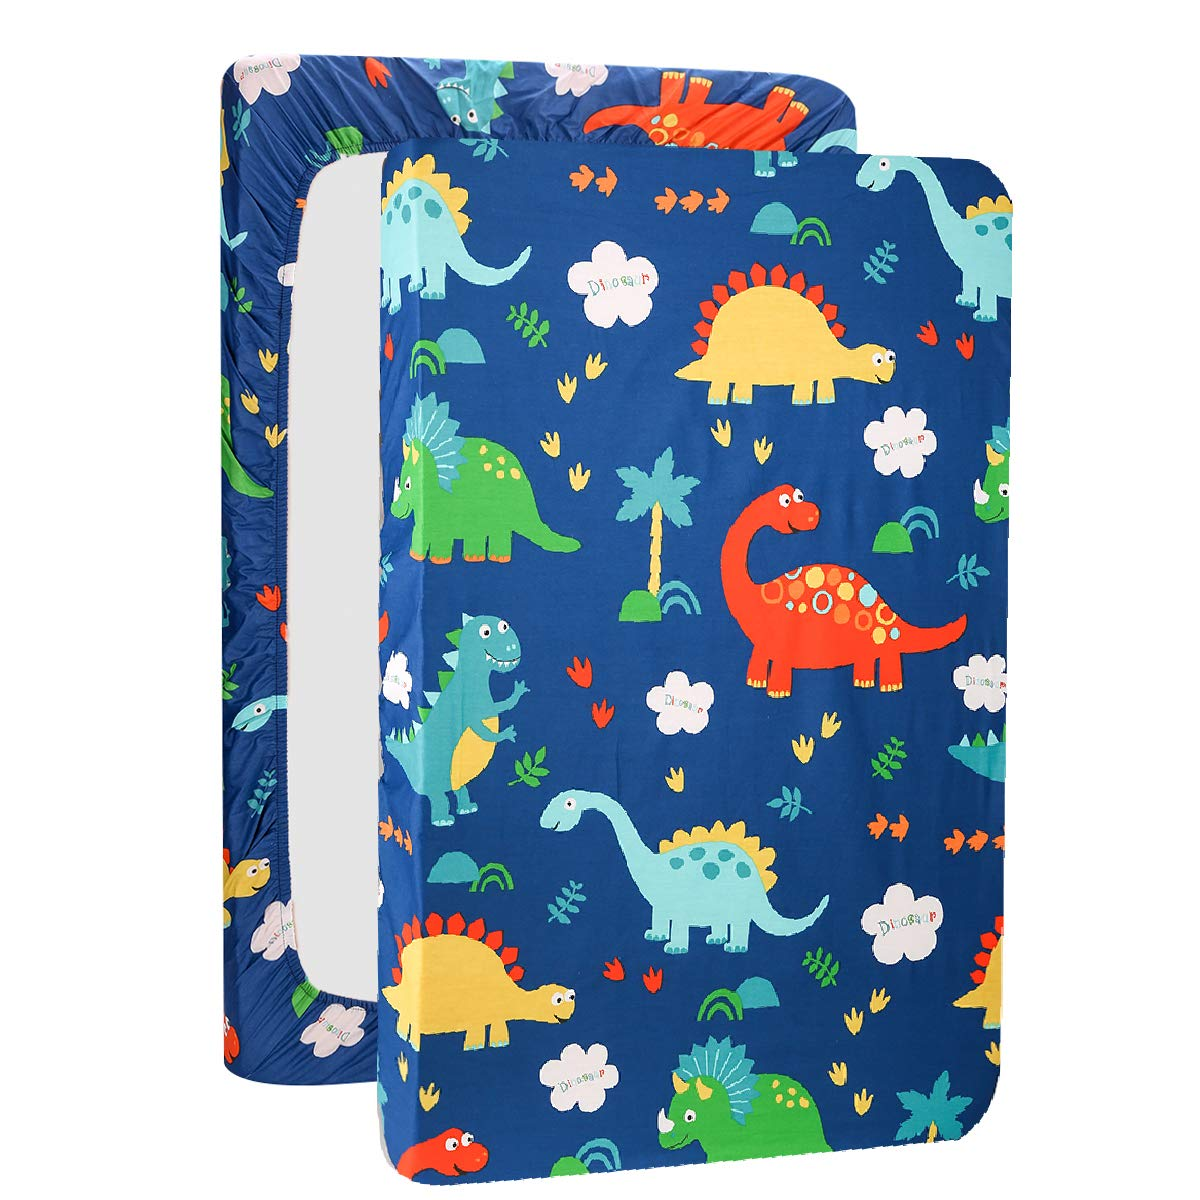 UOMNY Mini Crib Sheets Dinosaur Pack n Play Playard Sheet Fitted Playard Mattress Sheet,100% Natural Cotton Mini Portable Crib Sheets for Boys and Girls 1 Pack